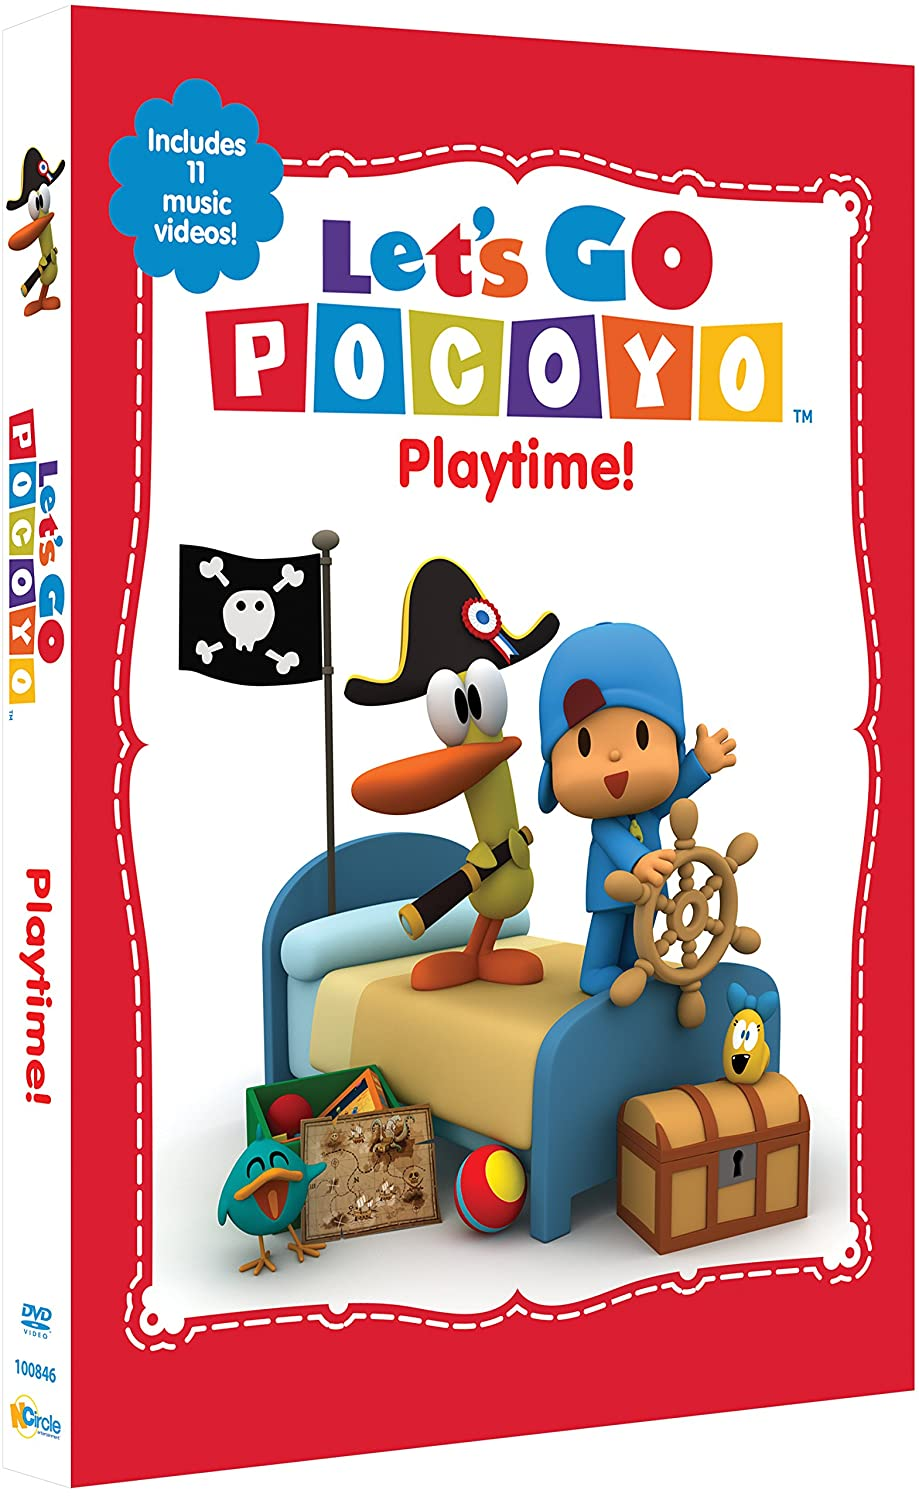 Amazon.com Lets Go Pocoyo Playtime! Stephen Hughes Alfonso Rodriguez Movies u0026 TV  sc 1 st  Amazon.com & Amazon.com: Lets Go Pocoyo Playtime!: Stephen Hughes Alfonso ...